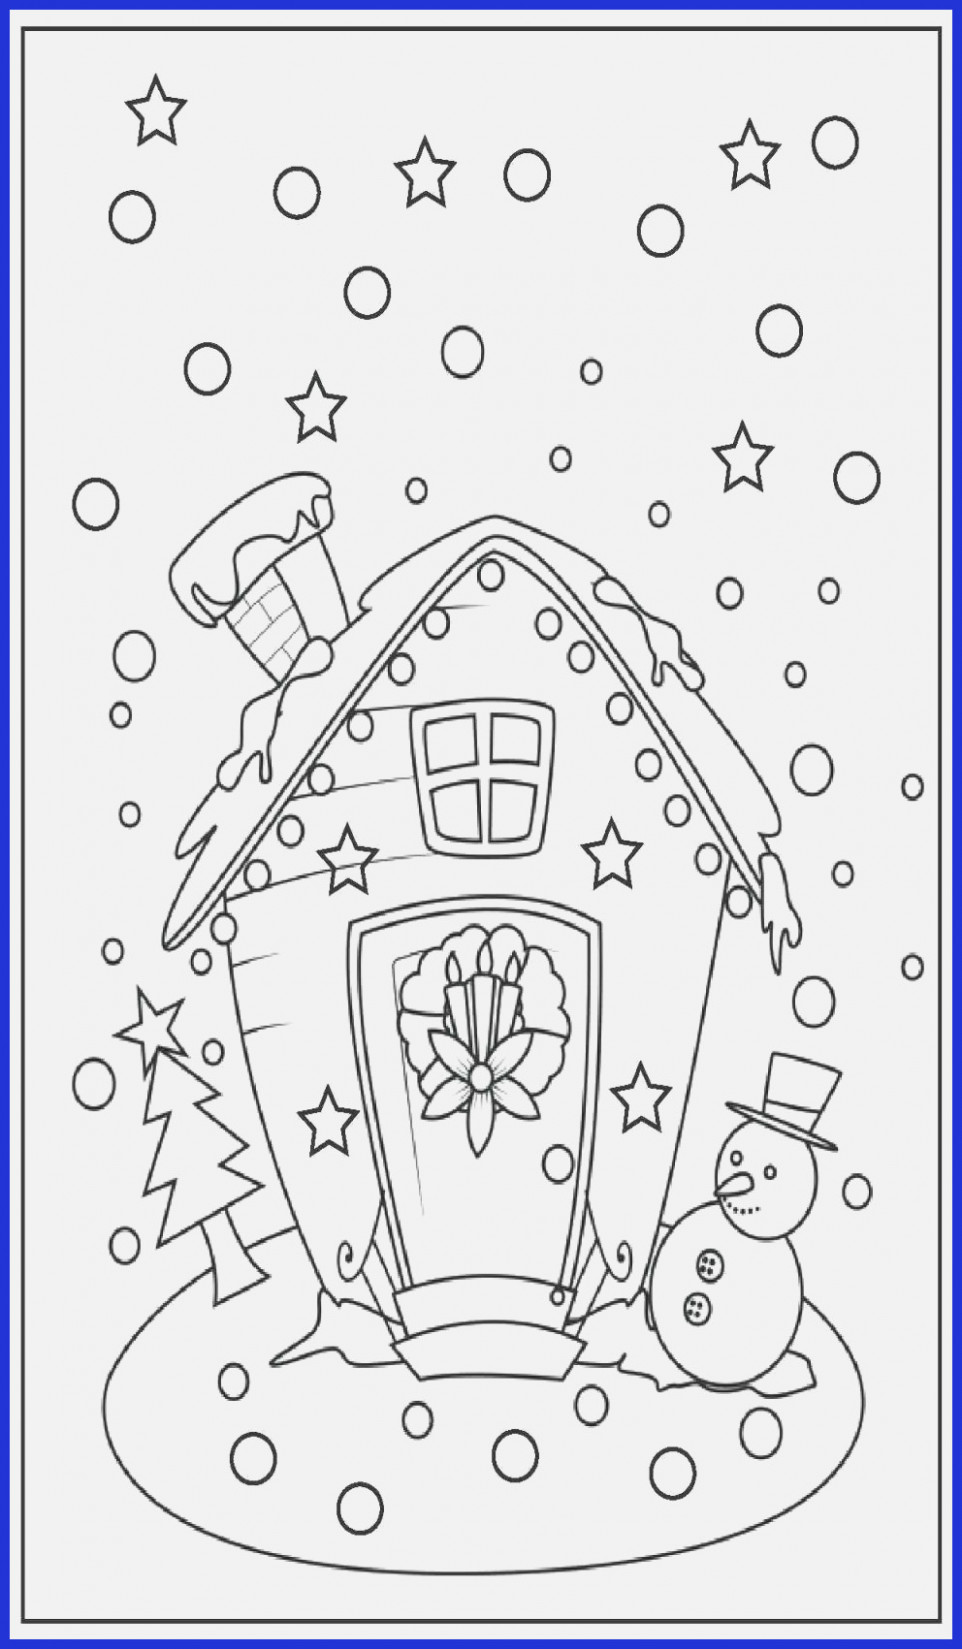 coloring pages for middle school kids printable pattern coloring ..